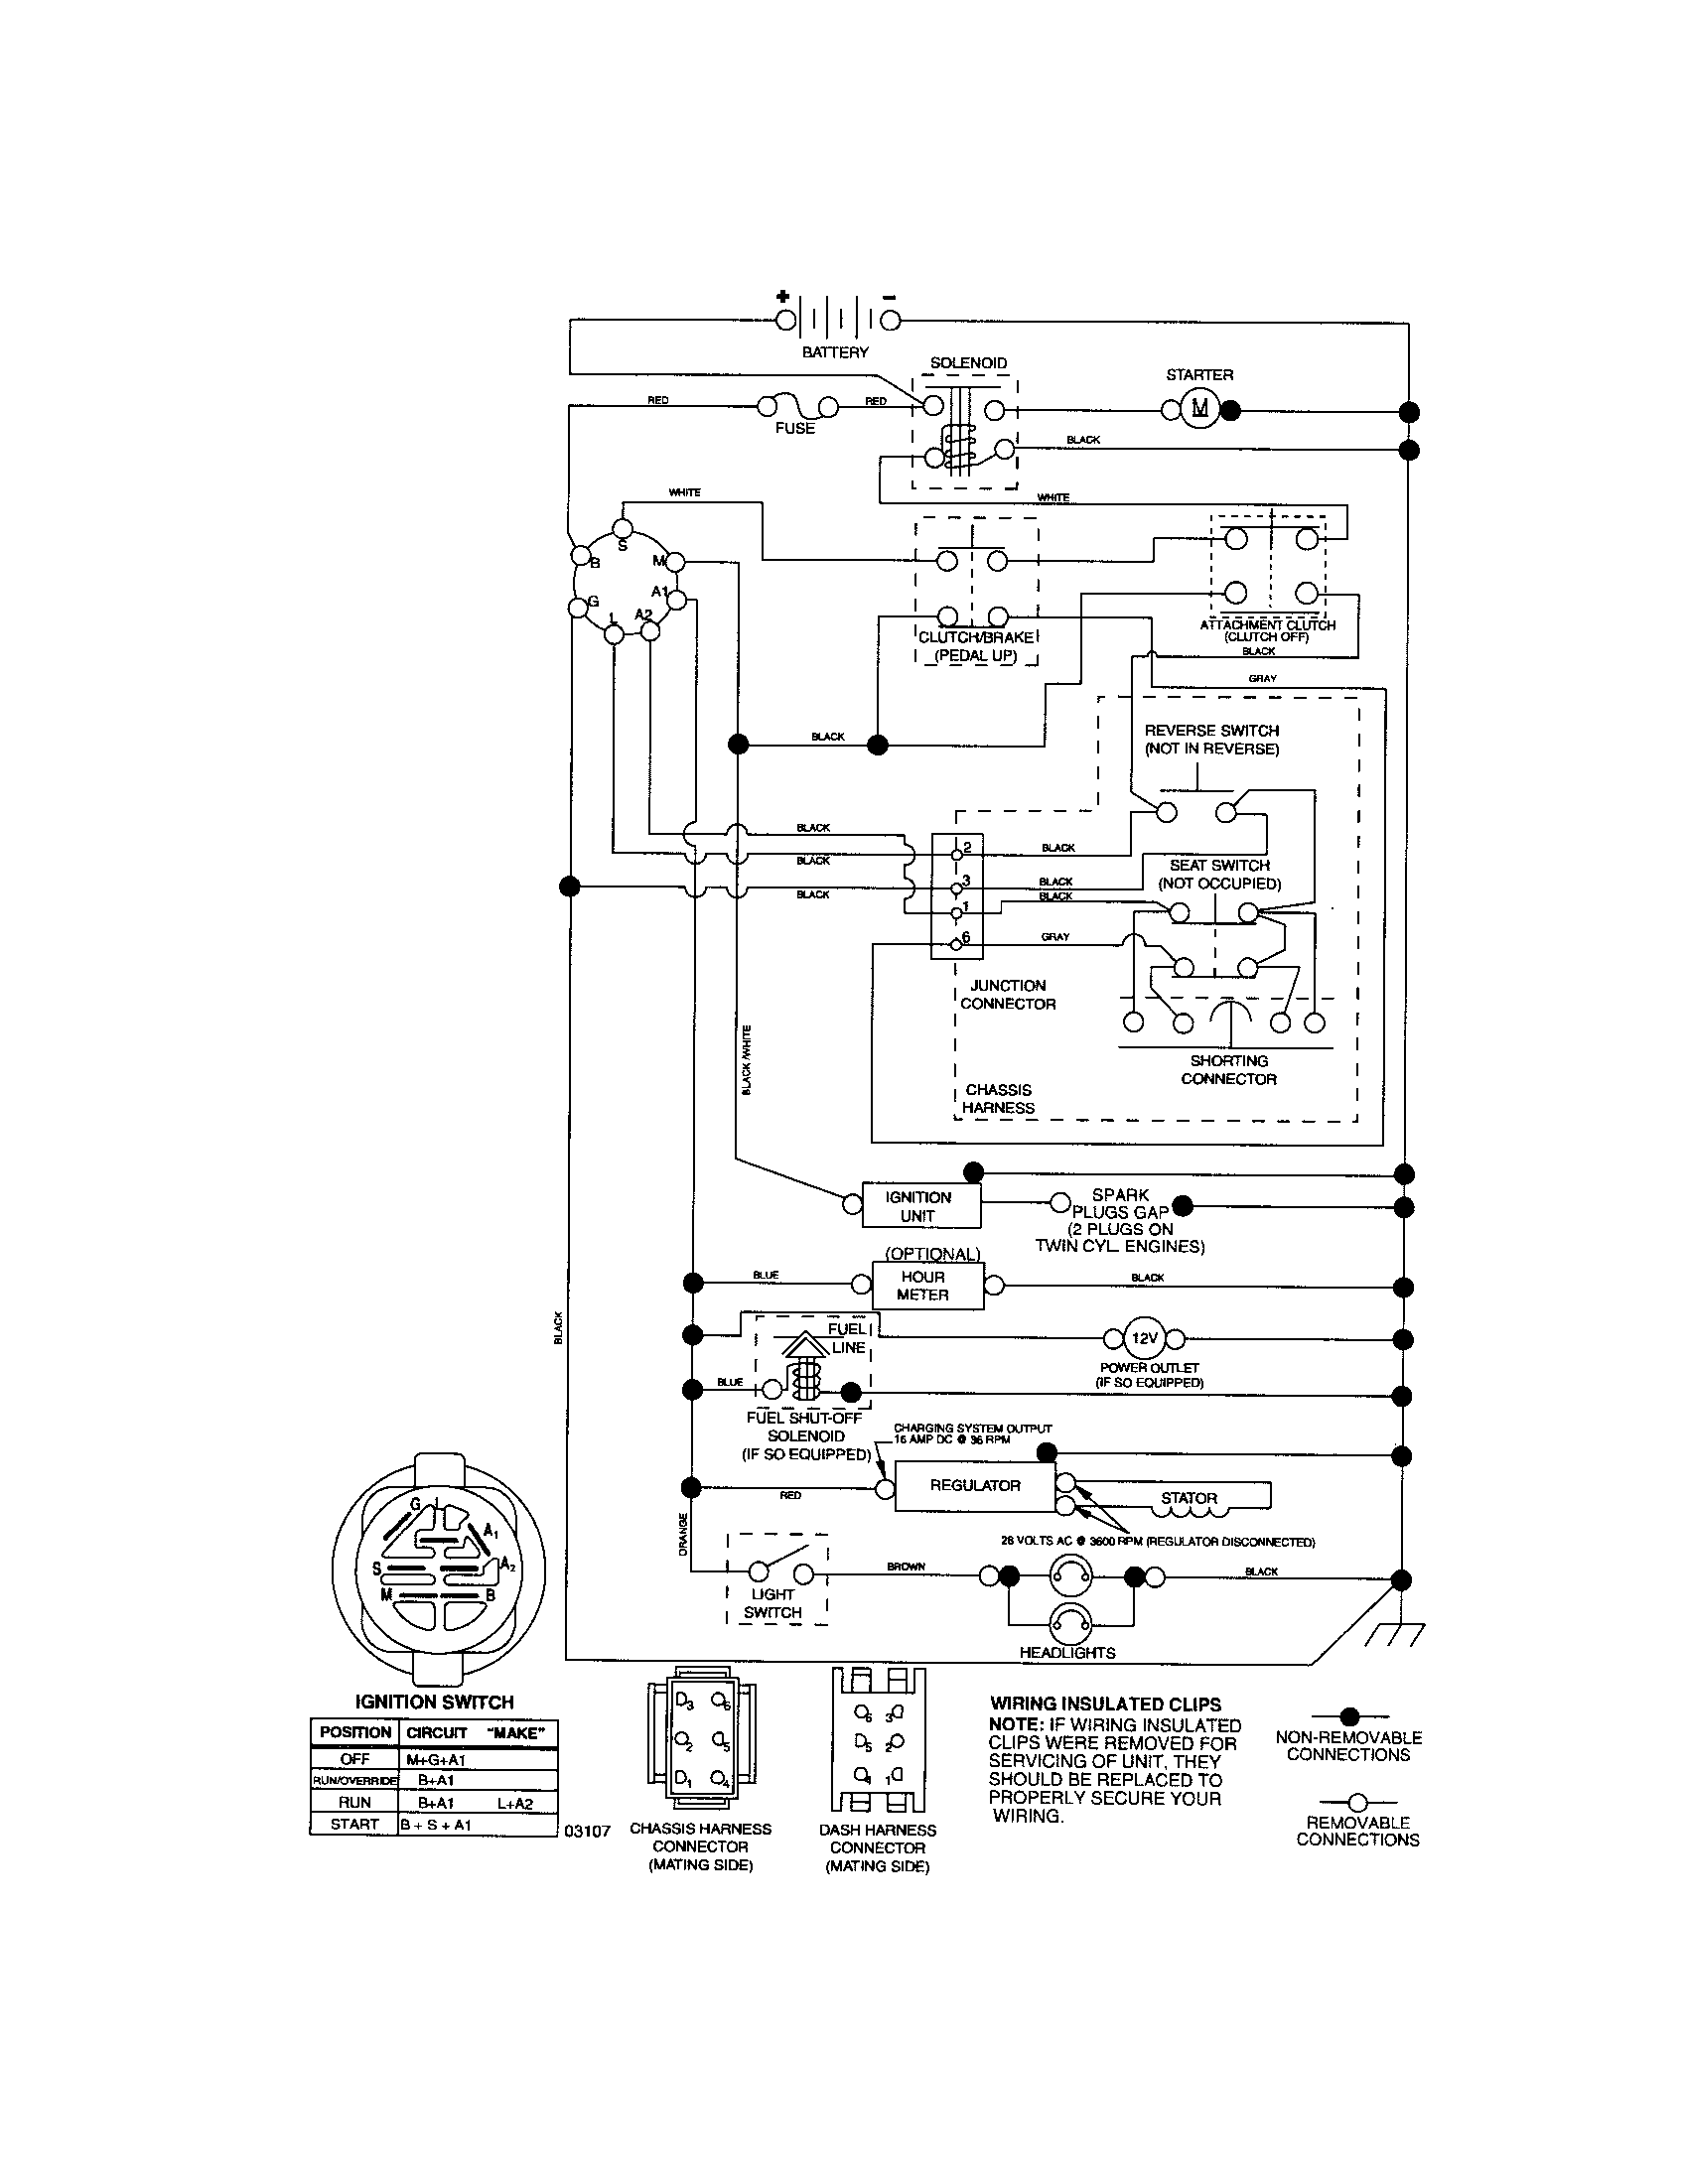 6af5f1447fd13c8443376822ddc1e105 craftsman riding mower electrical diagram wiring diagram craftsman lawn tractor wiring diagram at soozxer.org